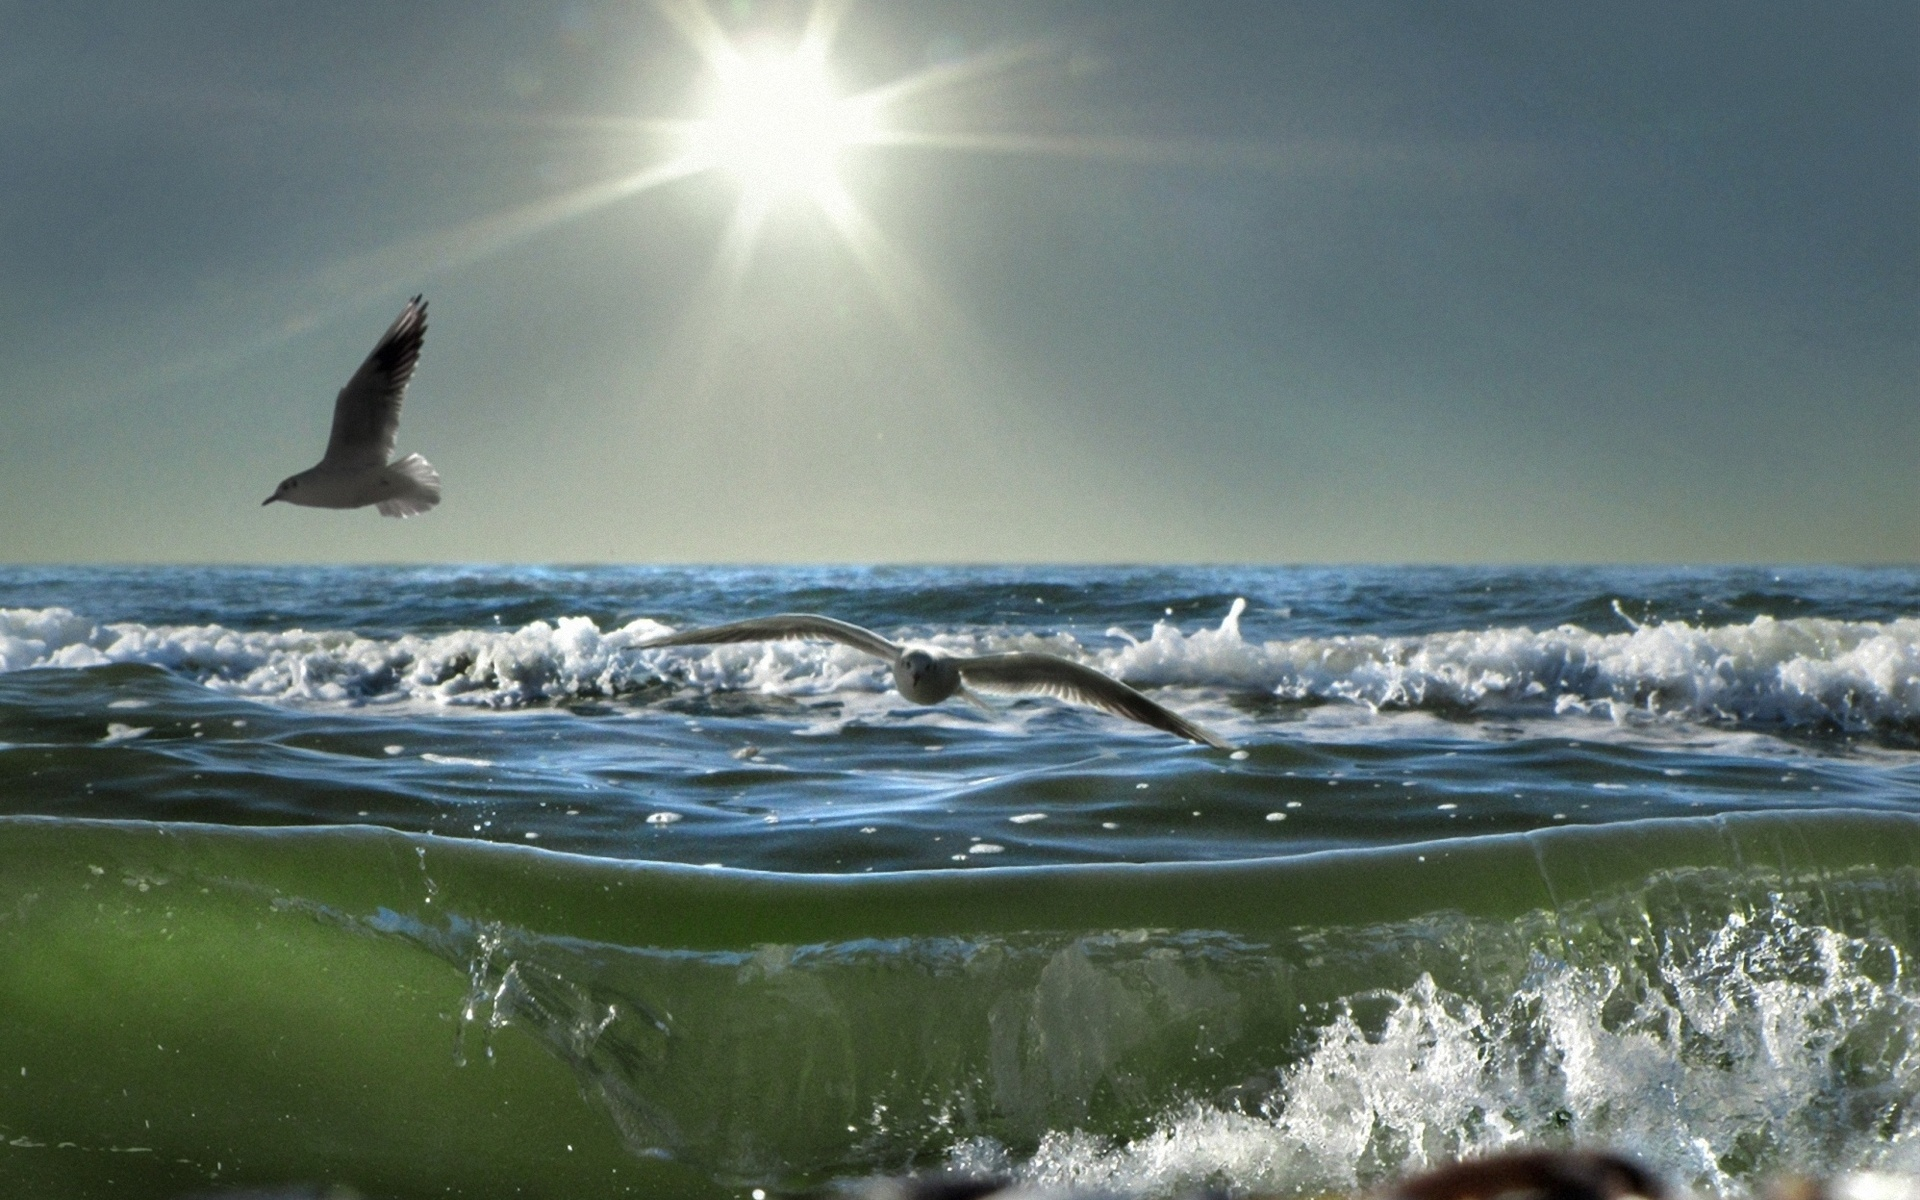 21610 download wallpaper Animals, Landscape, Birds, Sea, Sun, Seagulls, Waves screensavers and pictures for free